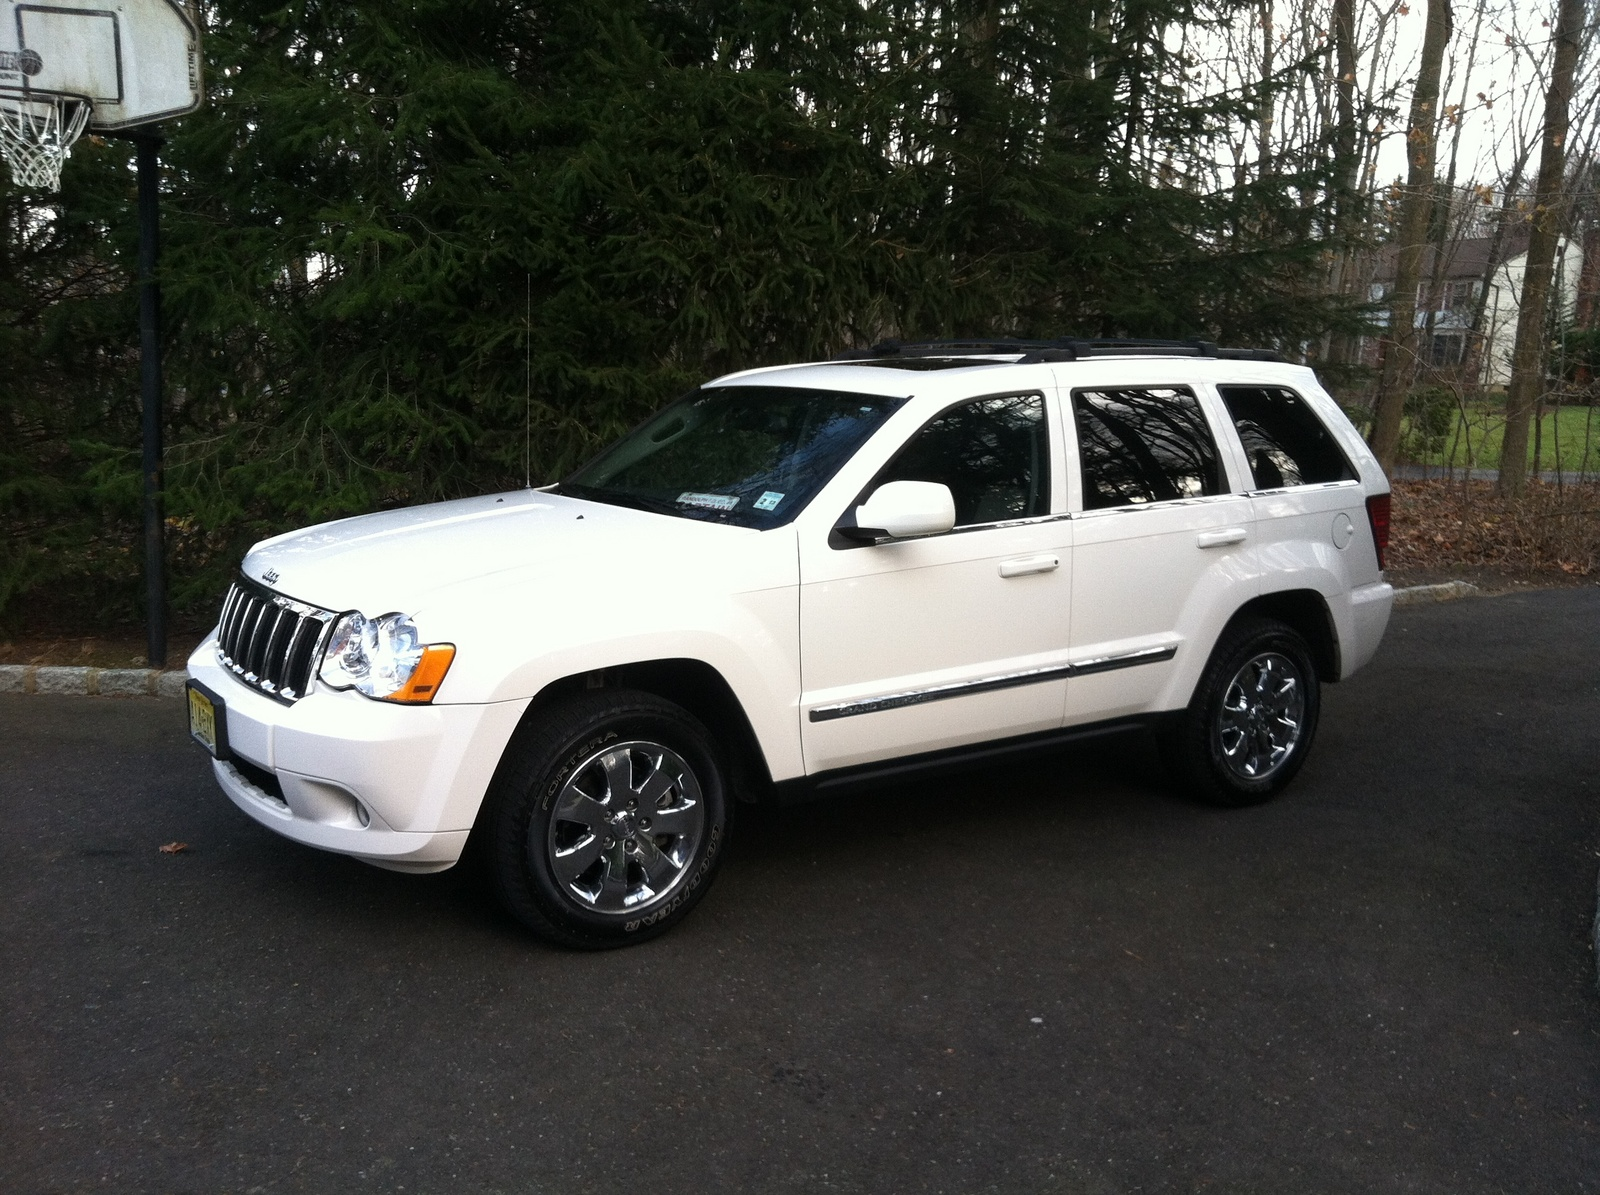 2008 Jeep Grand Cherokee - Pictures - CarGurus